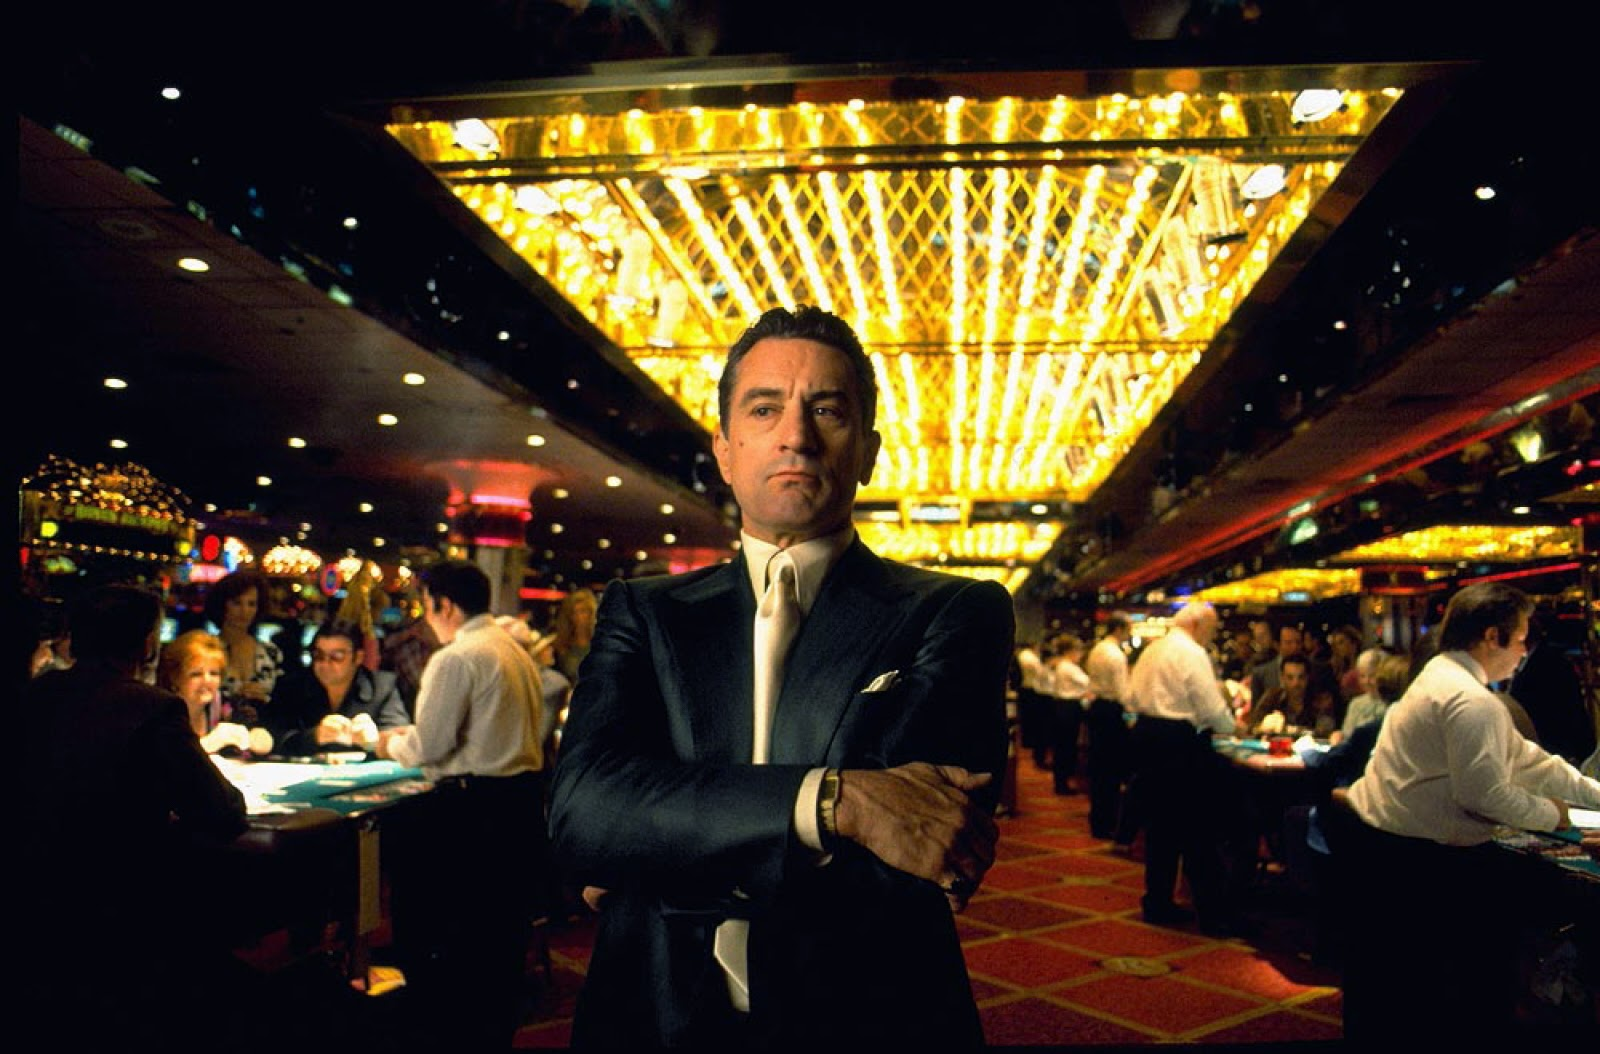 ensuperocho 1x06 casino